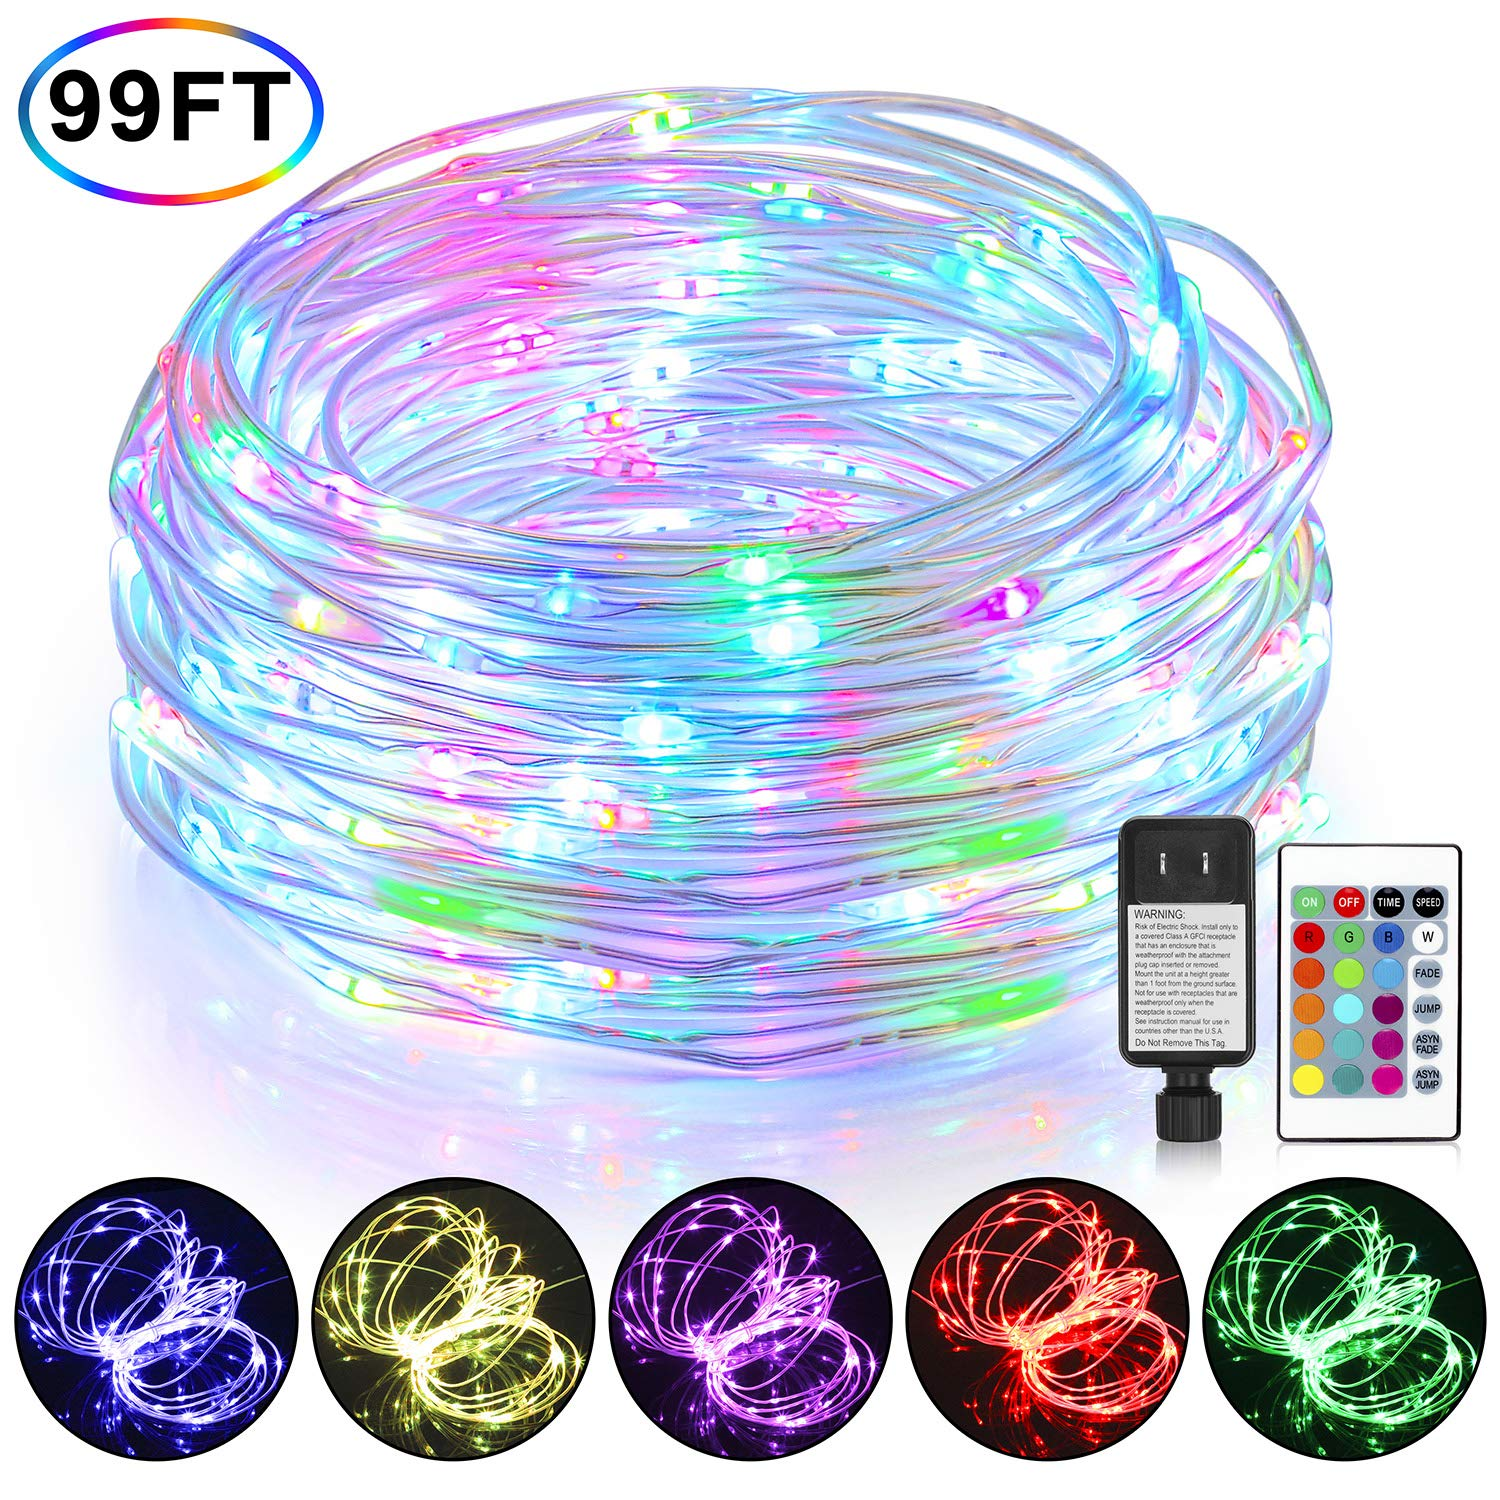 Mlambert 99Ft LED Rope Lights Outdoor, Color Changing Fairy String Lights Plug in with 300 LEDs, Waterproof, Super Durable, 16 Colors with Remote, for Bedroom Patio Wedding and Christmas Decor by Mlambert